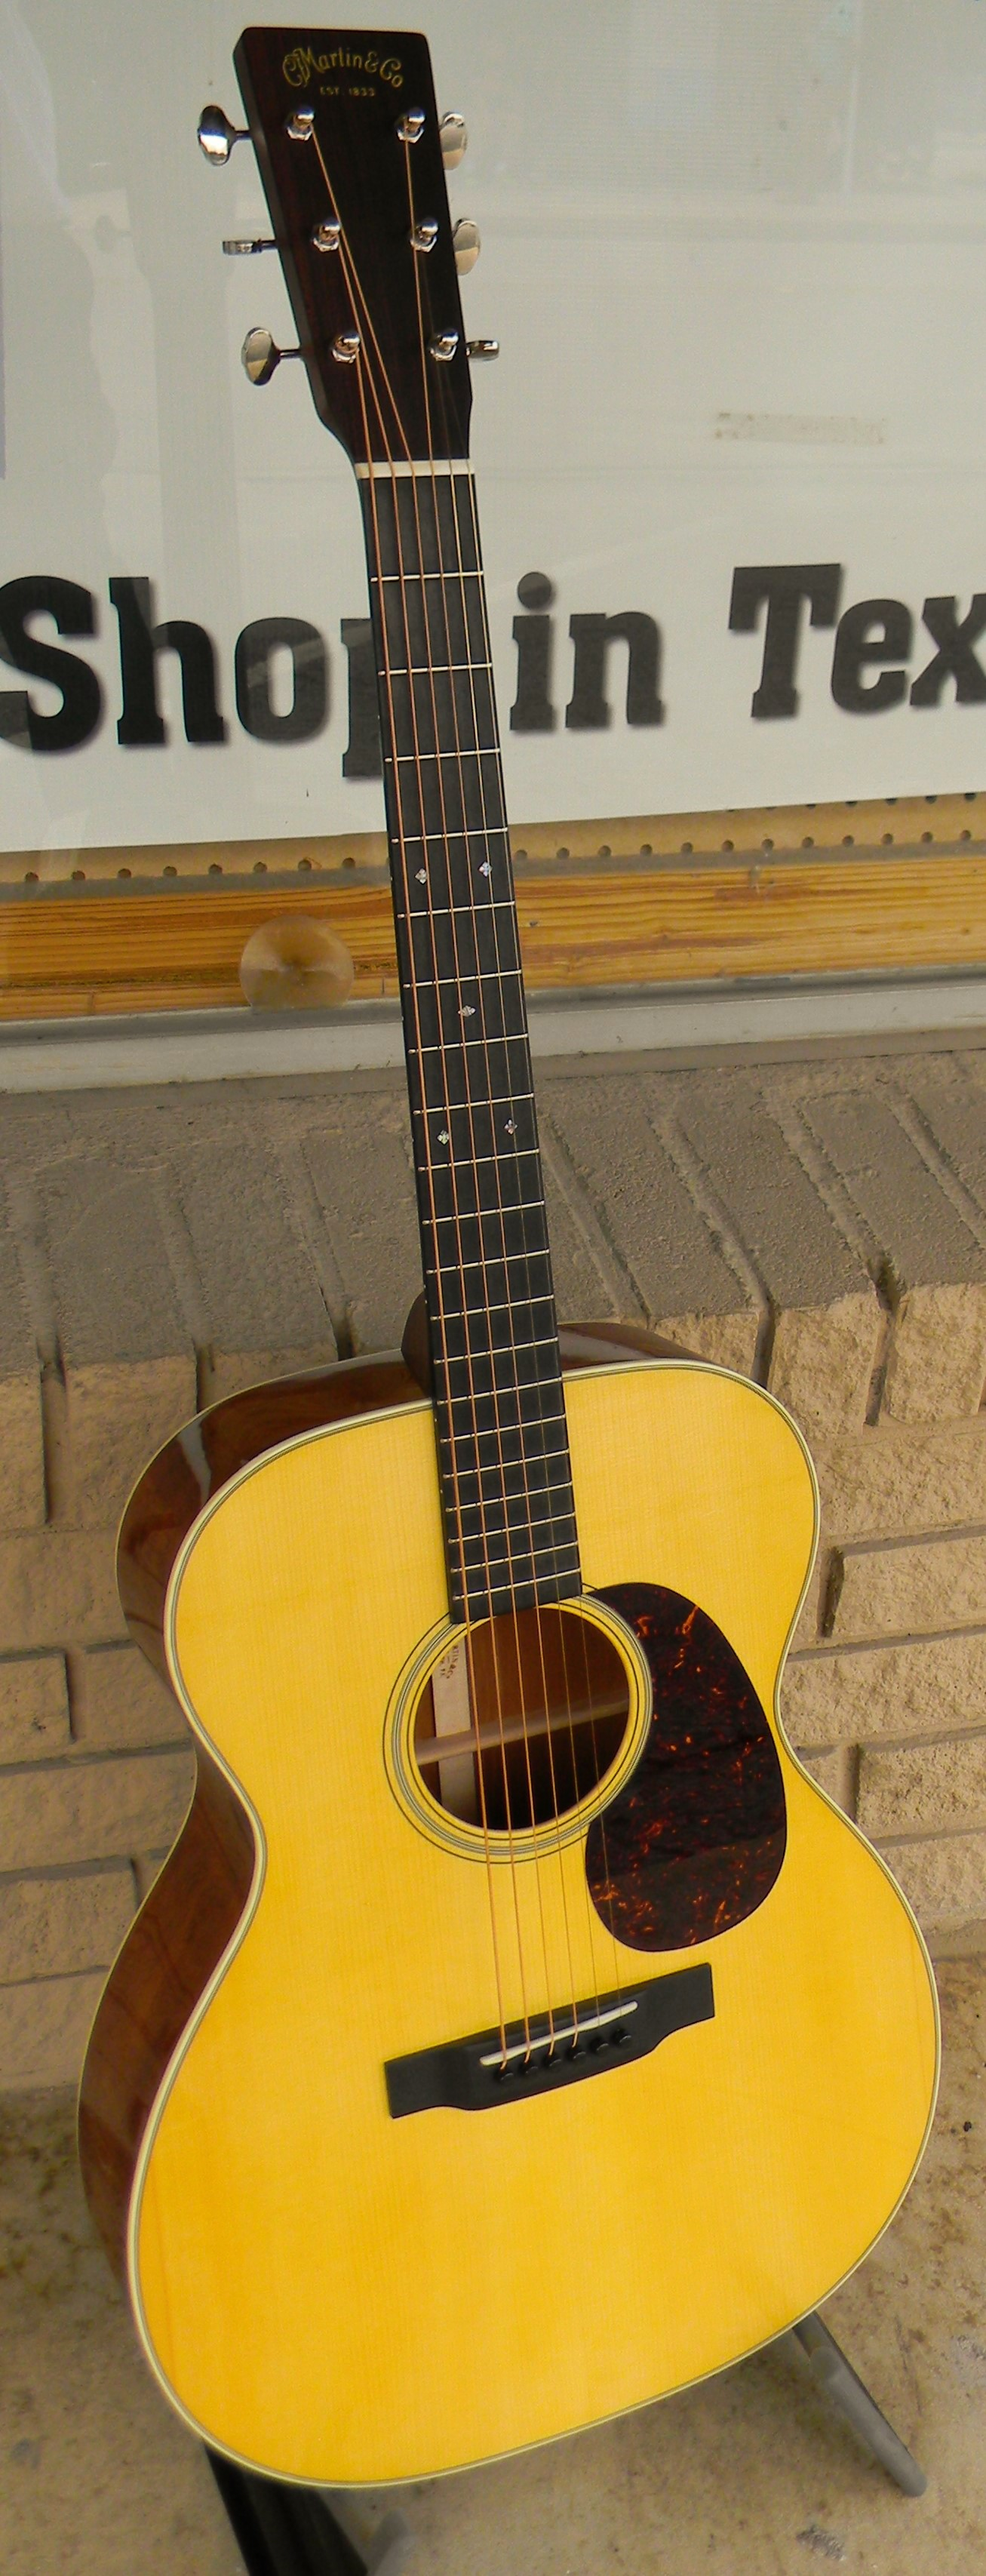 Custom Shop 000-18 with Adirondack spruce and sinker mahogany. SALE: $3,650.00